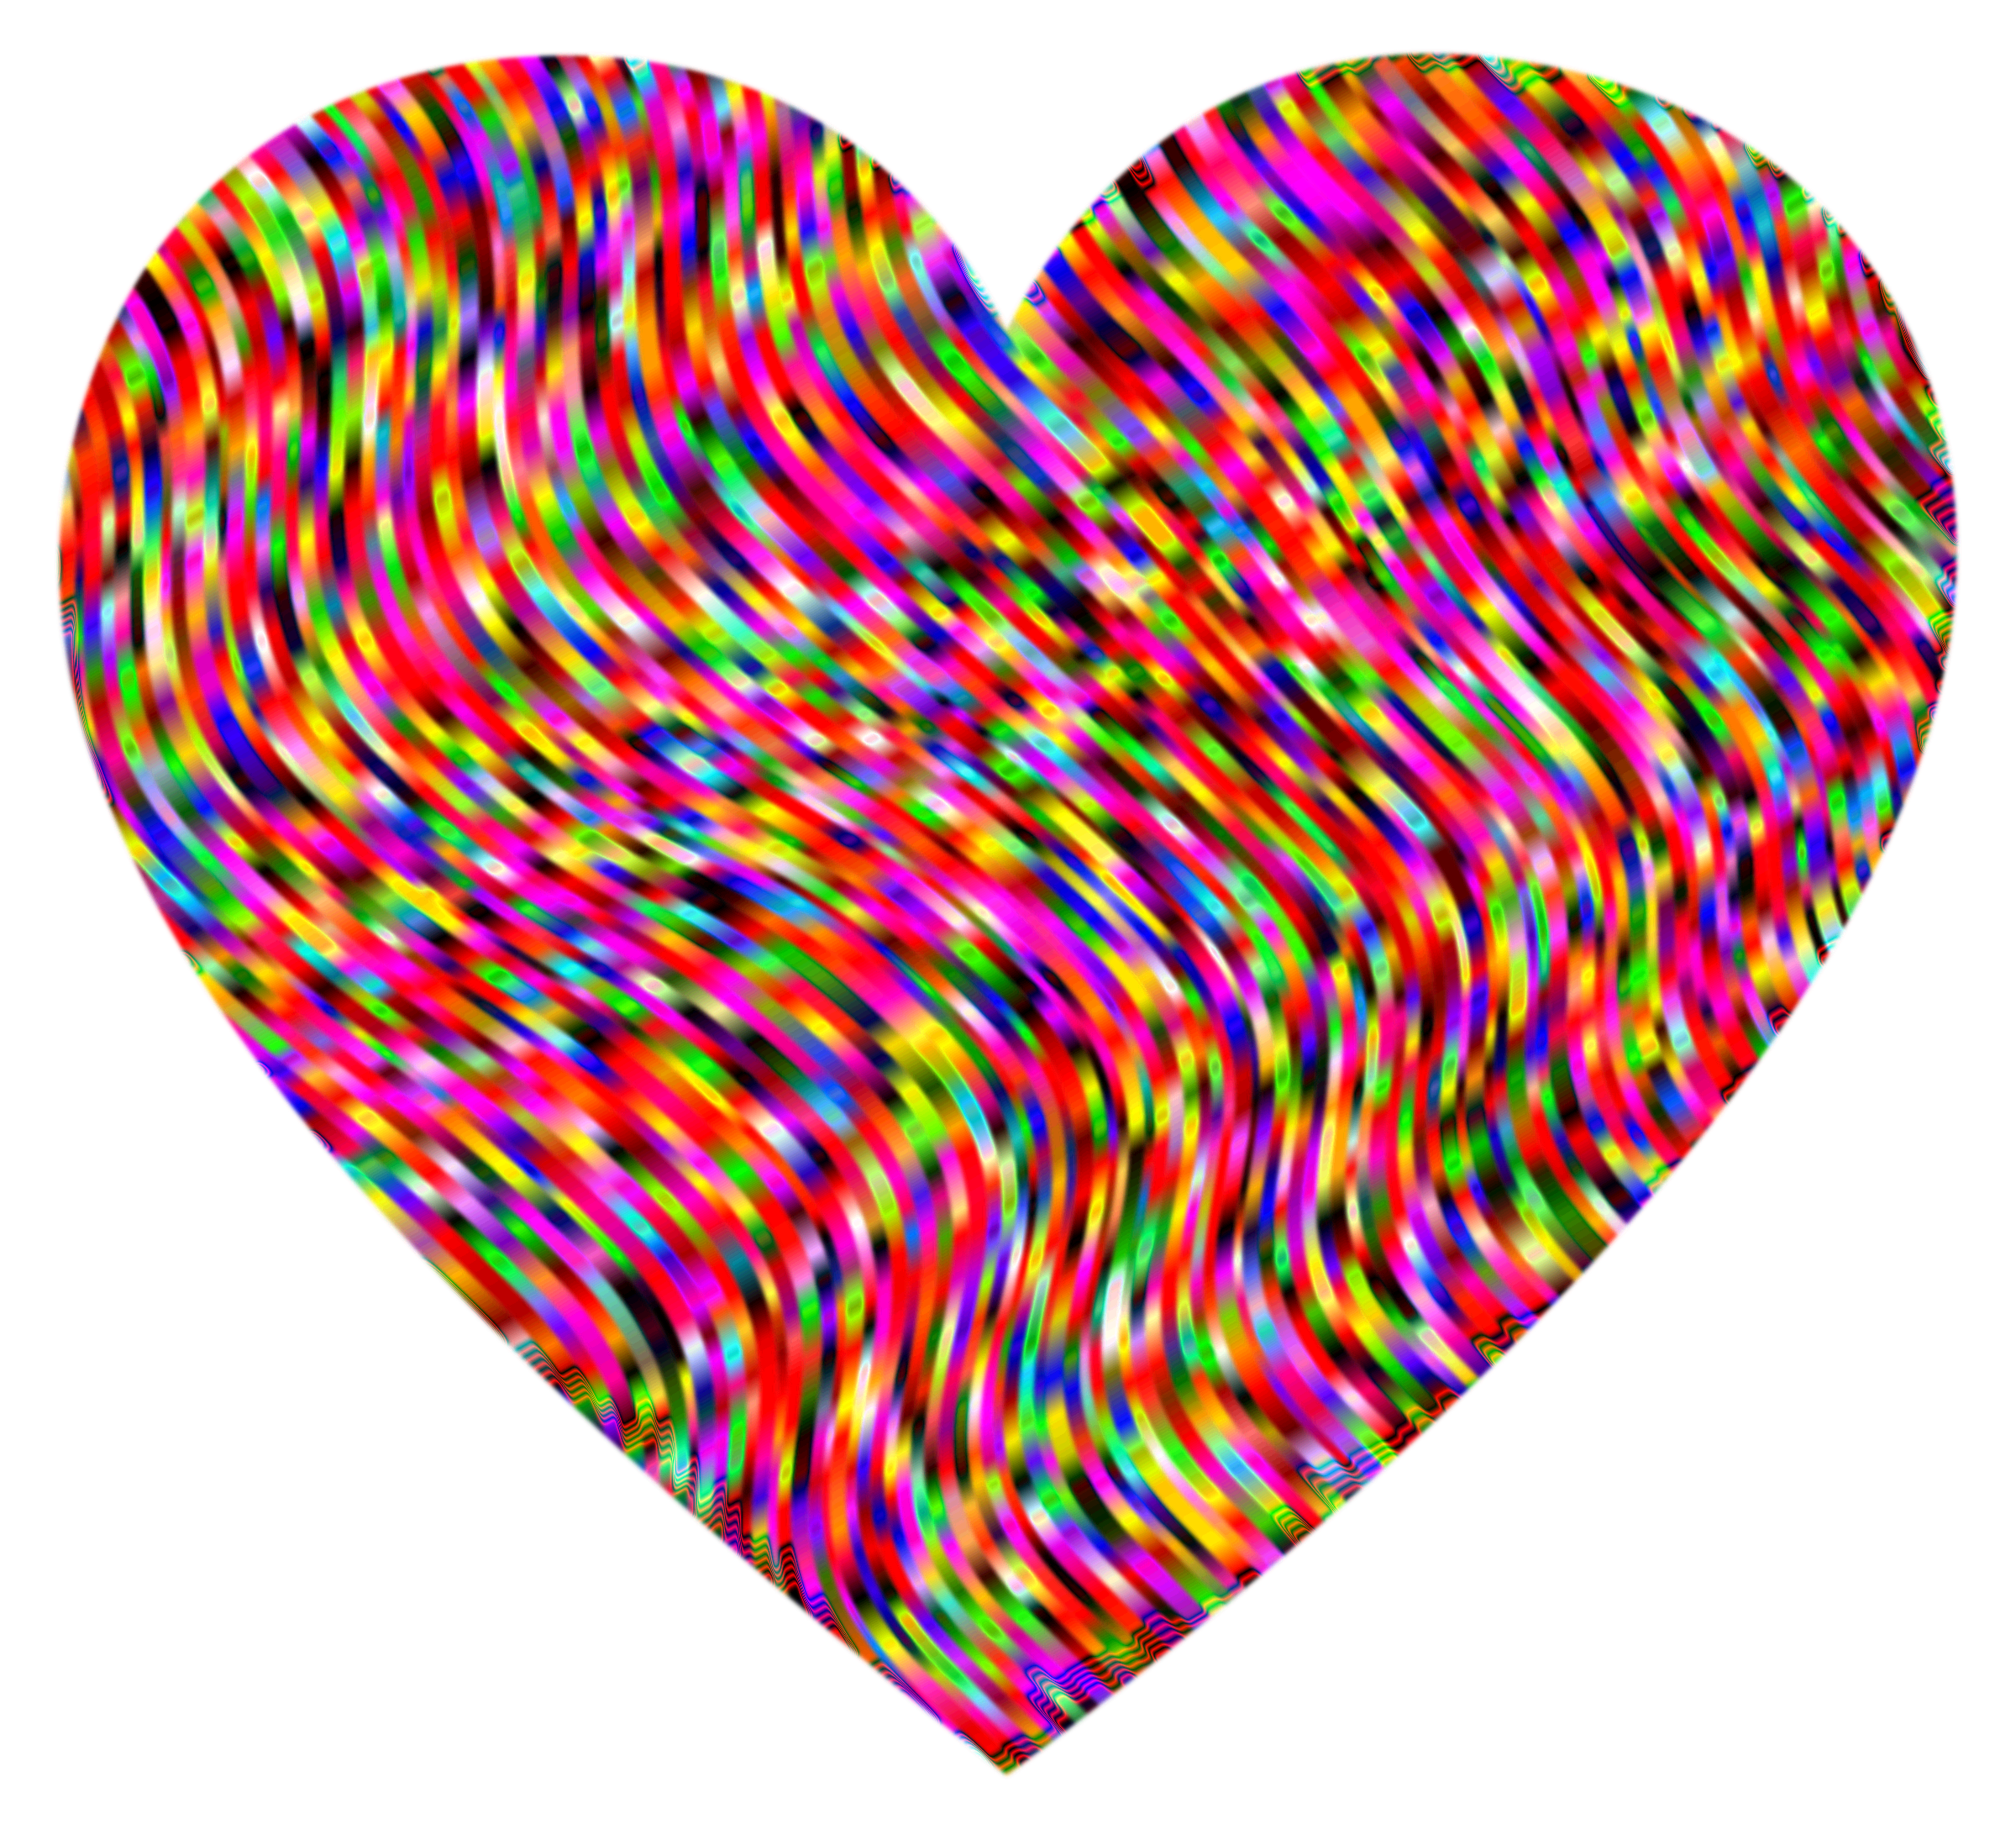 Waves clipart heart. Psychedelic big image png